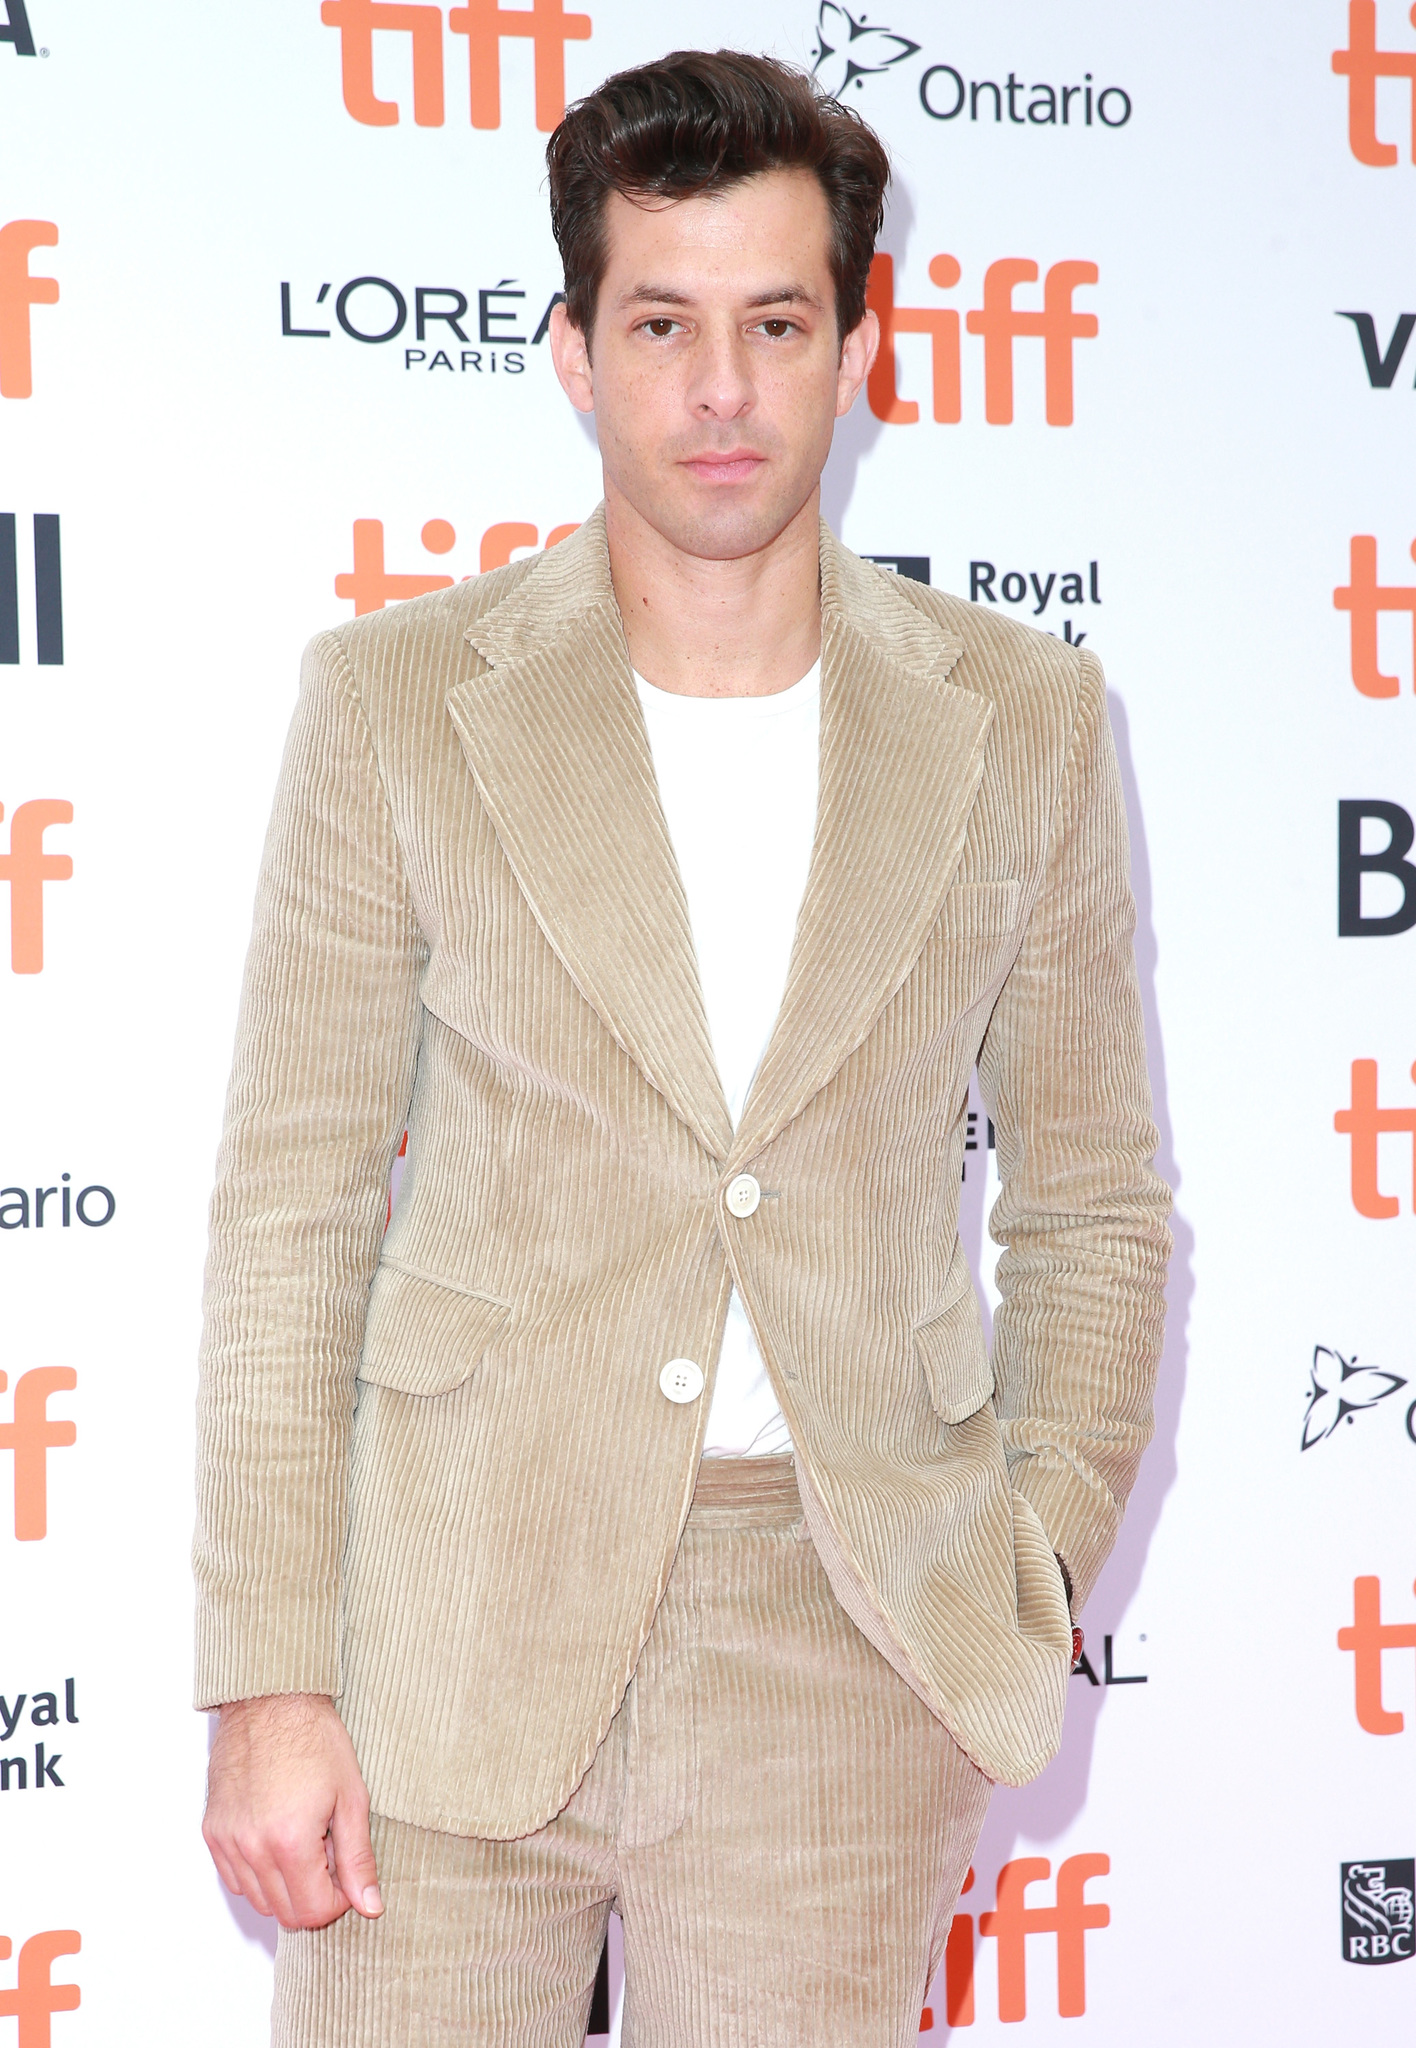 Mark Ronson at an event for Quincy (2018)